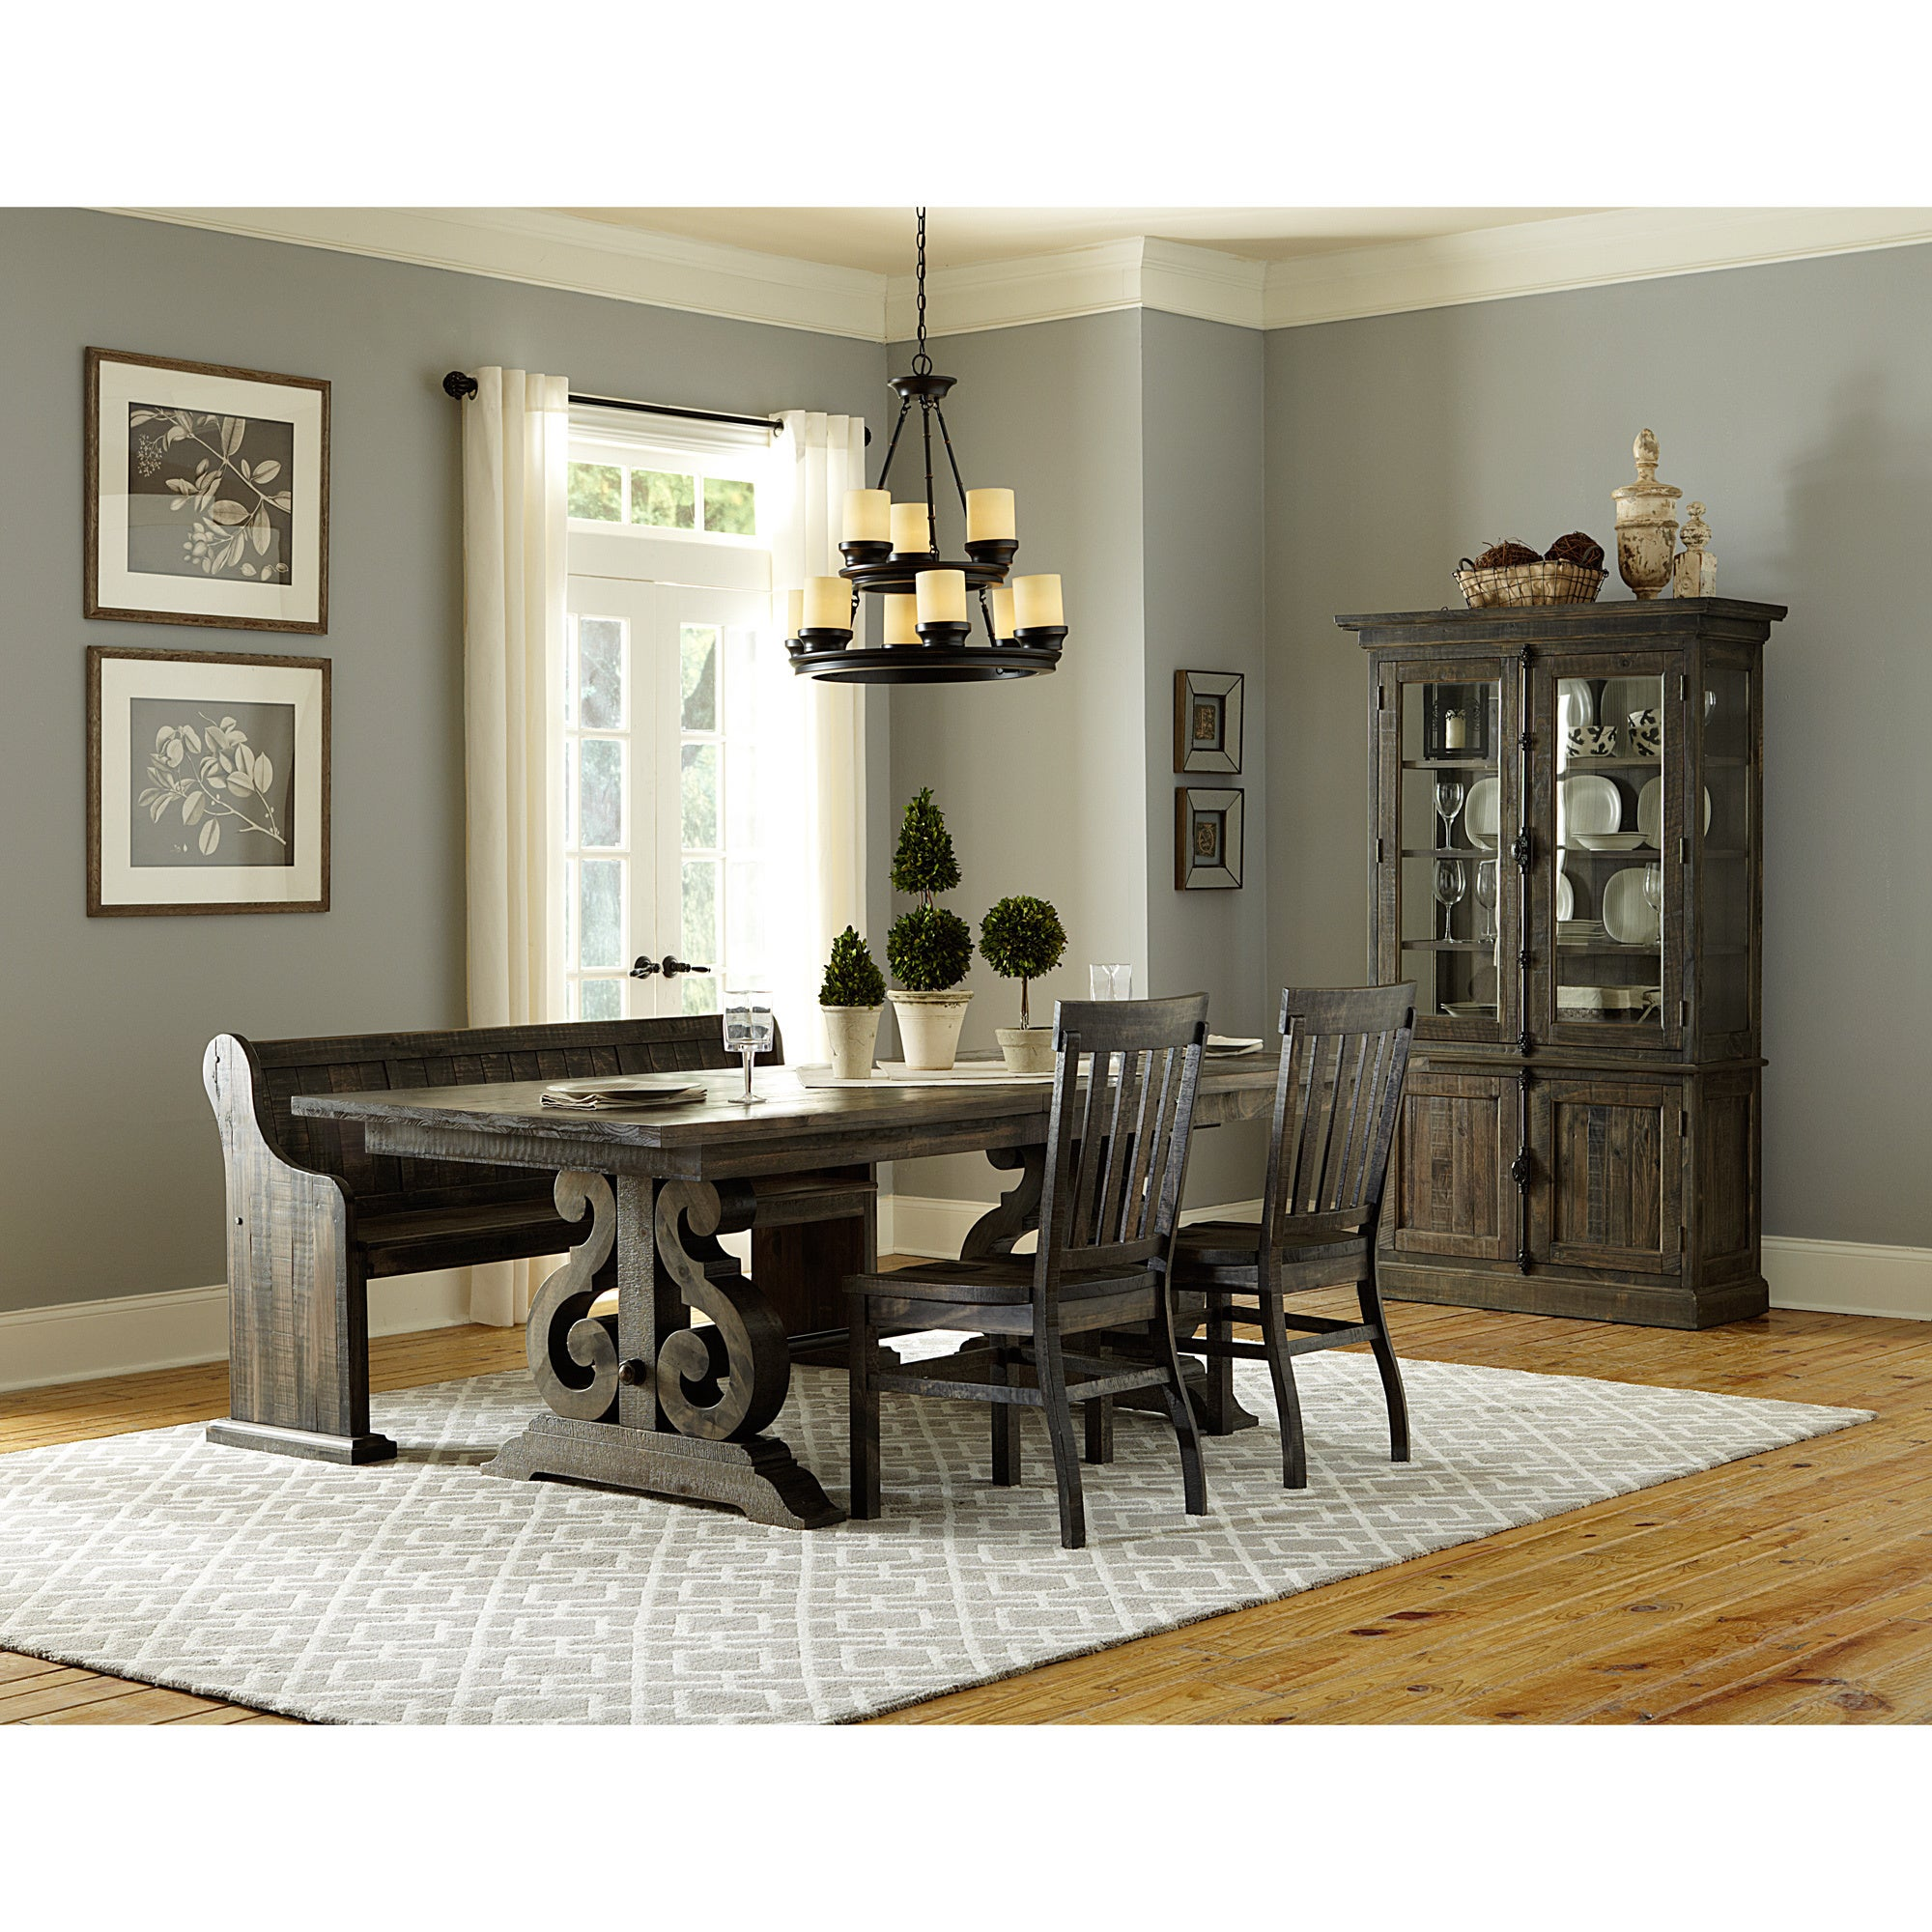 Shop Gracewood Hollow Barbara Aged Wood Dining Bench On Sale - Aged wood dining table